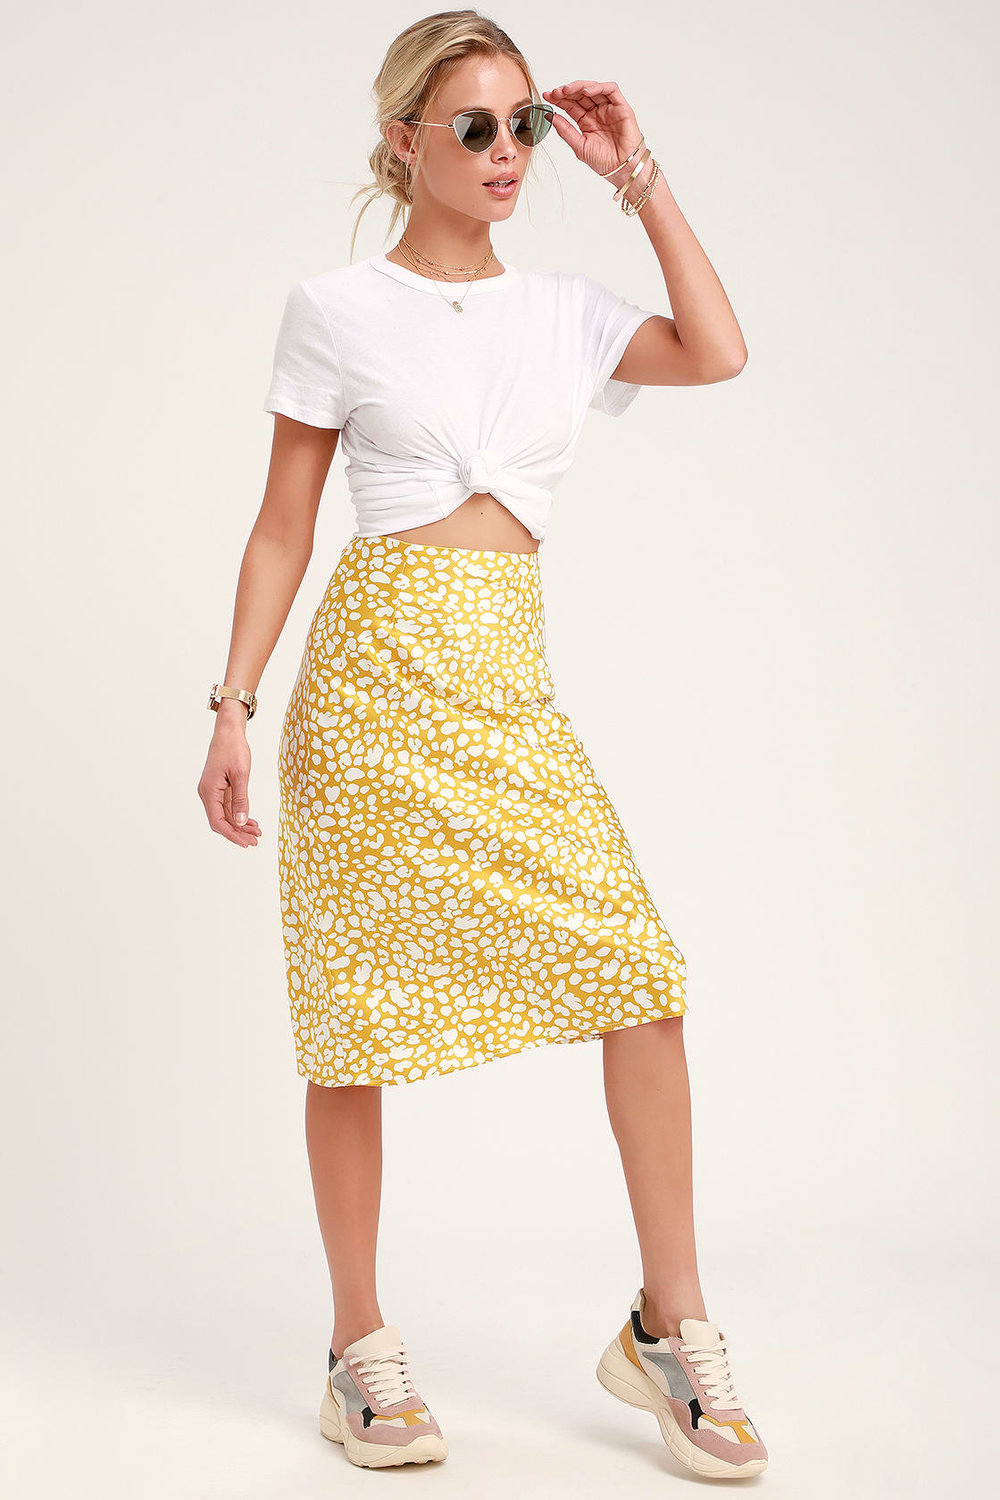 ELISA MUSTARD YELLOW PRINT SATIN MIDI SKIRT By Lulus